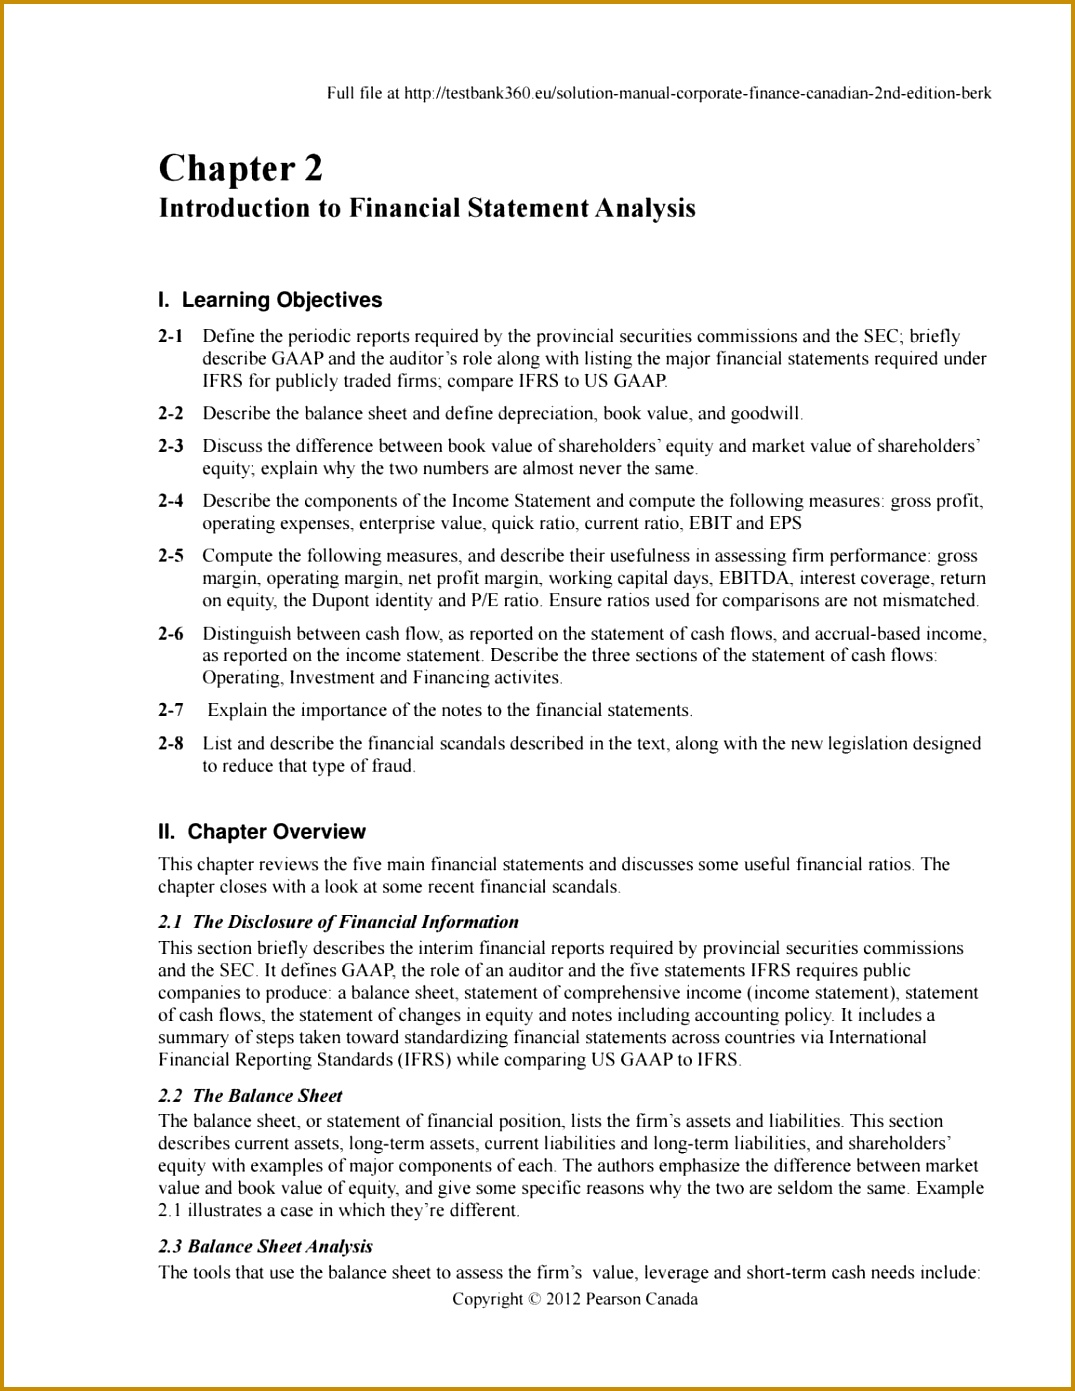 5 Notes To Financial Statements Template | FabTemplatez